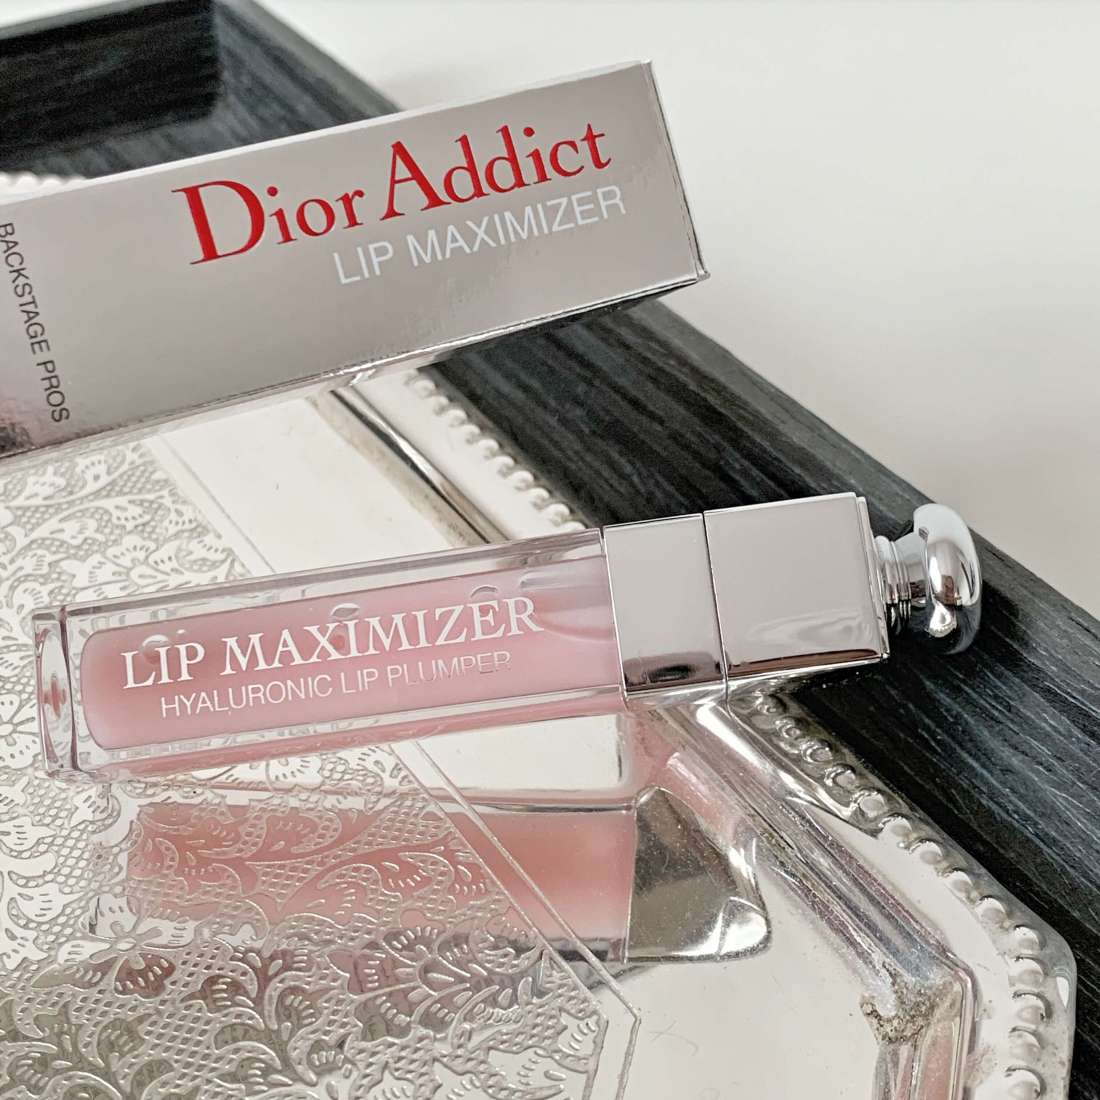 Dior Addict Lip Maximizer Review